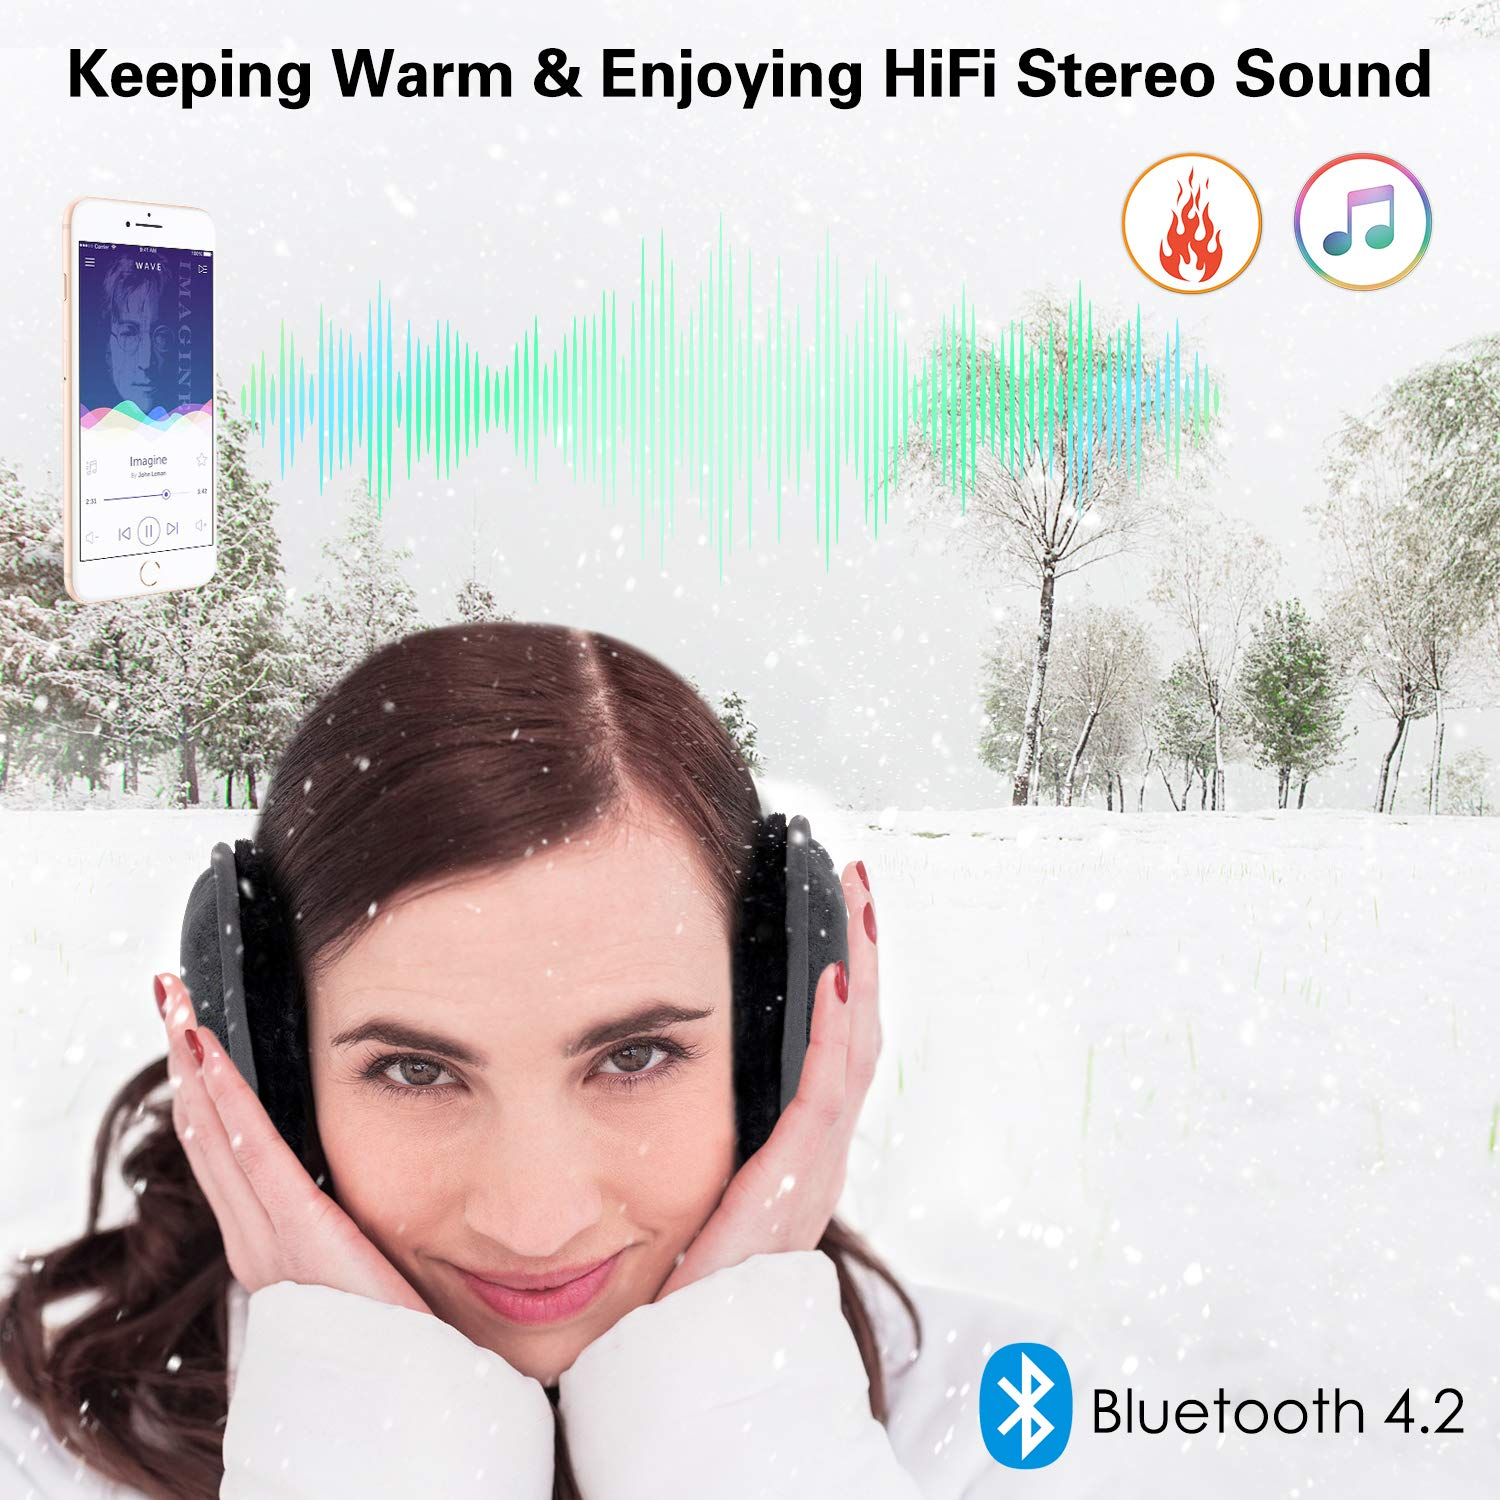 ink-topoint Bluetooth Earmuffs Headphones,Wireless HD Stereo Music Ear Warmer, Handfree Headset with Built-in Speaker Unisex Winter Ear Muffs for Walking,Running,Skiing,Indoor Outdoors Activities